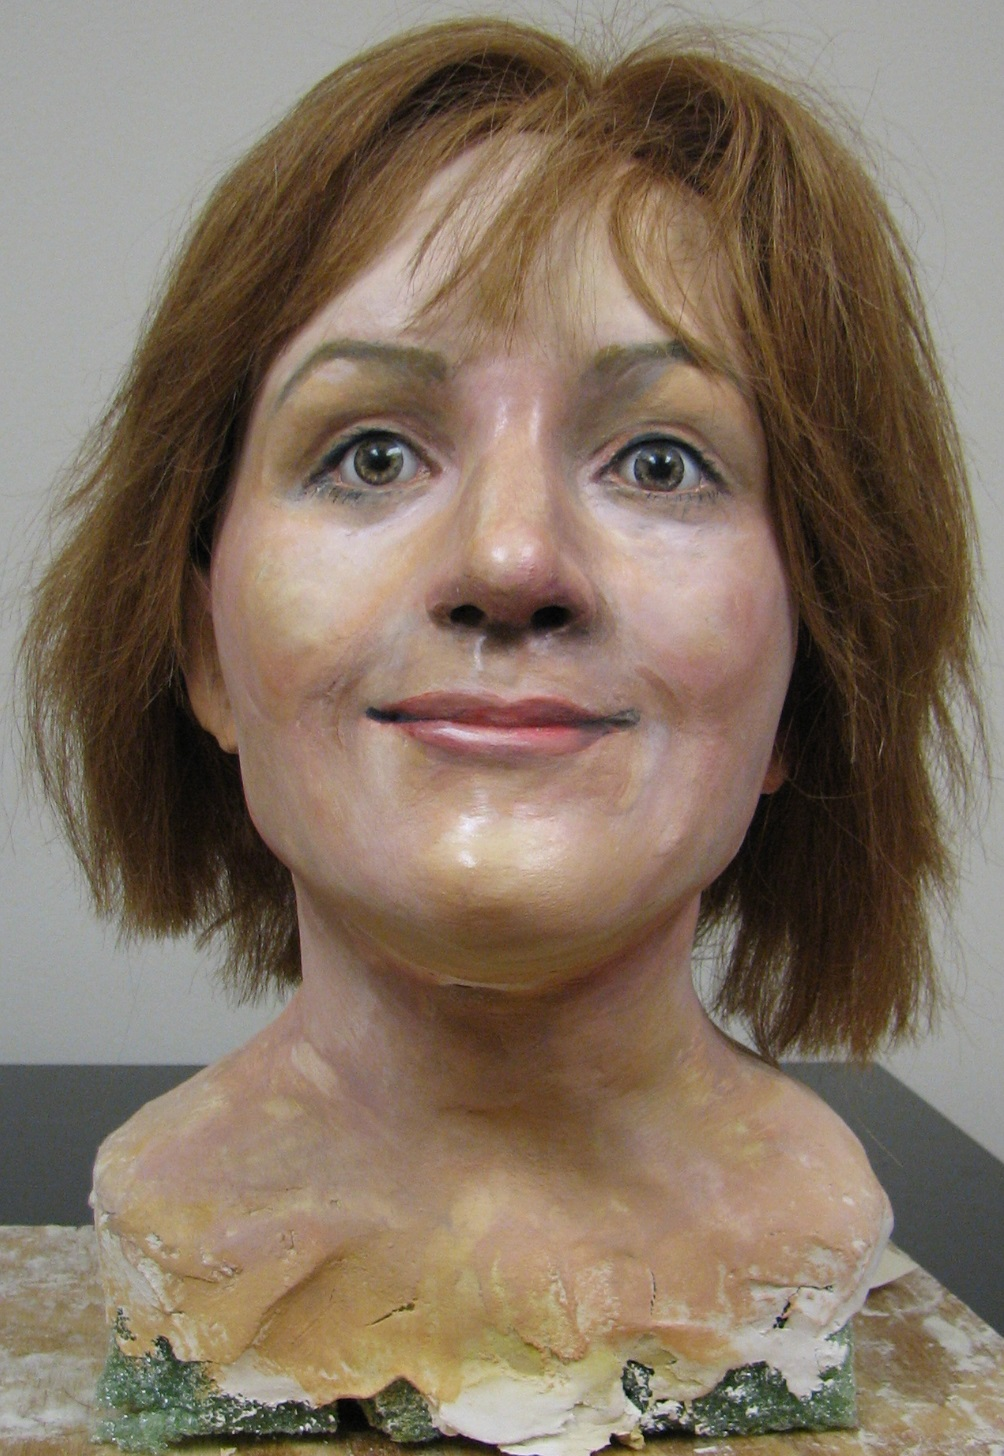 Cobb County Jane Doe (1984)